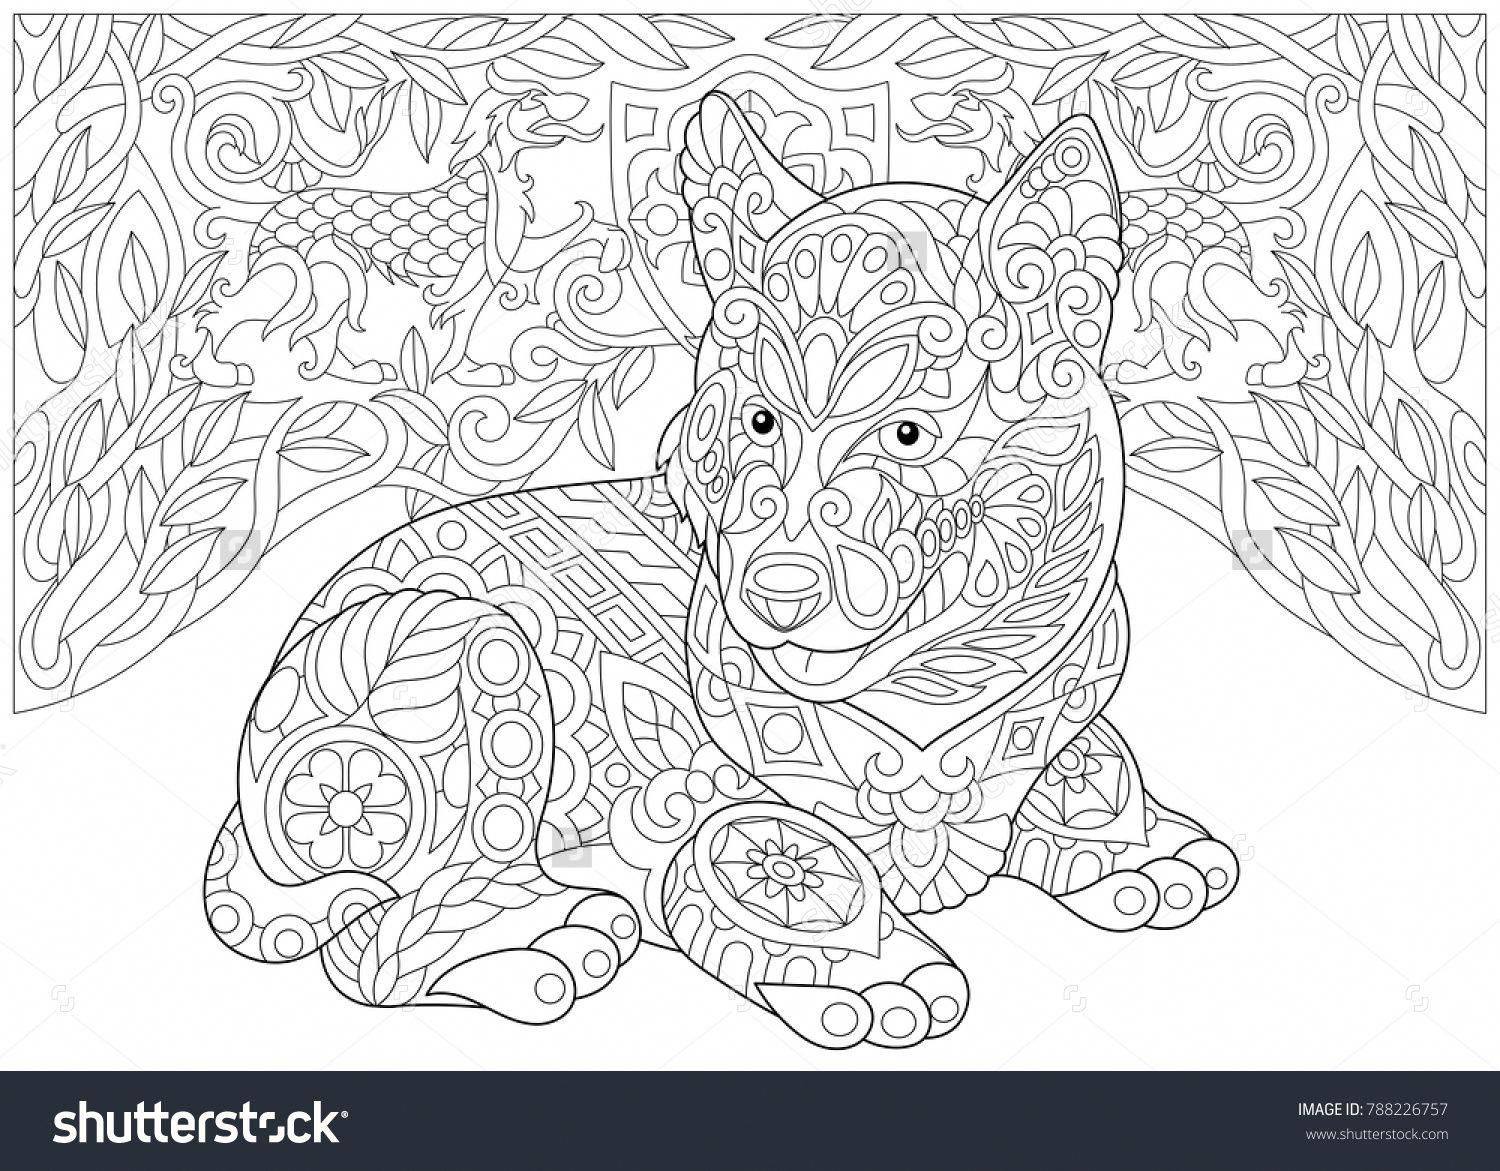 Fantastic Siberian Husky Detail Is Available On Our Website Check It Out And You Will Not Be Sorry Dog Coloring Book Dog Coloring Page Animal Coloring Pages [ 1171 x 1500 Pixel ]